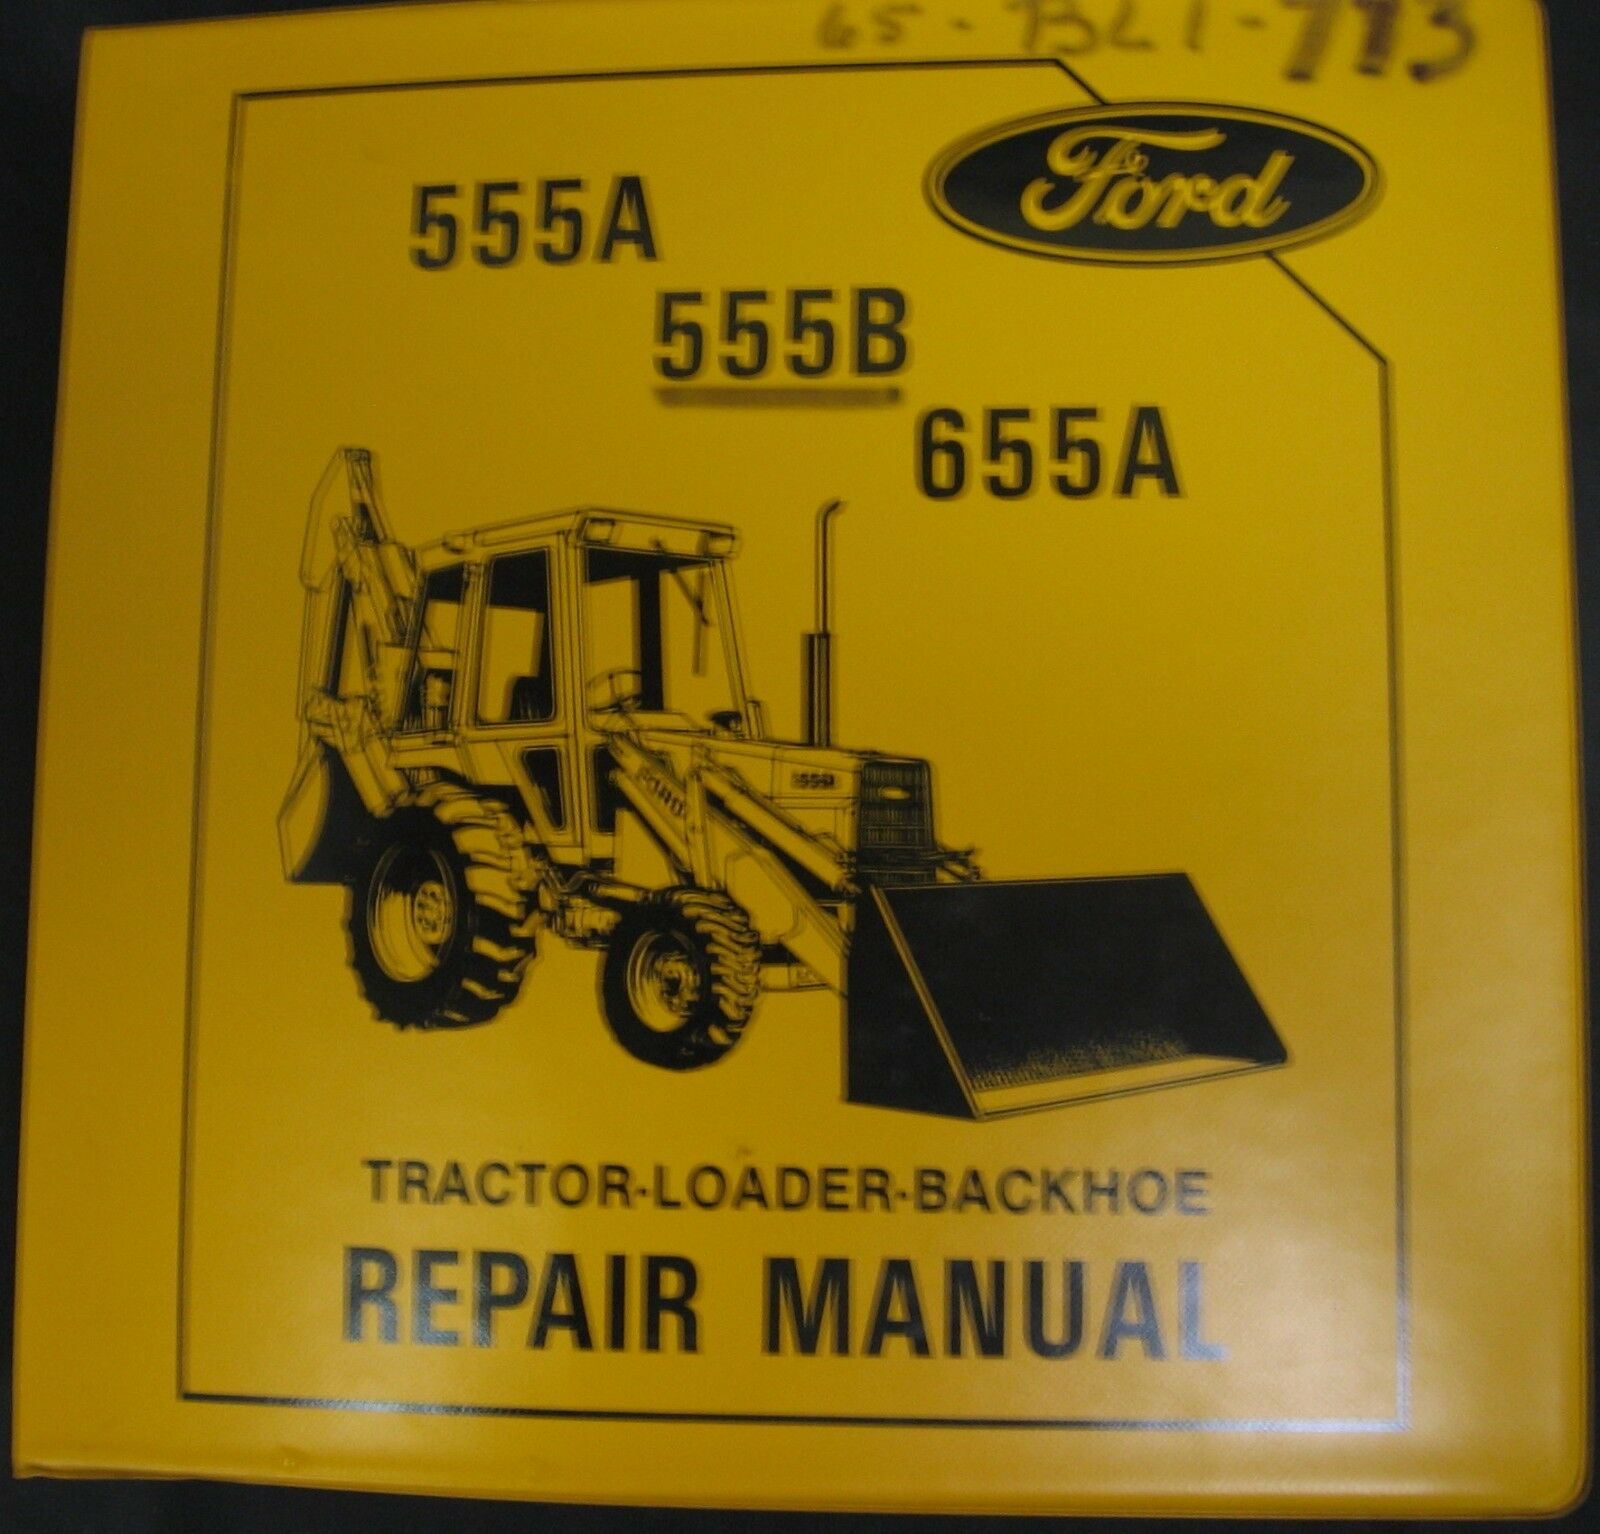 Ford 555A, 555B and 655A Tractor Loader Backhoe (TLB) Service Repair Manual  1 of 2Only 2 available ...